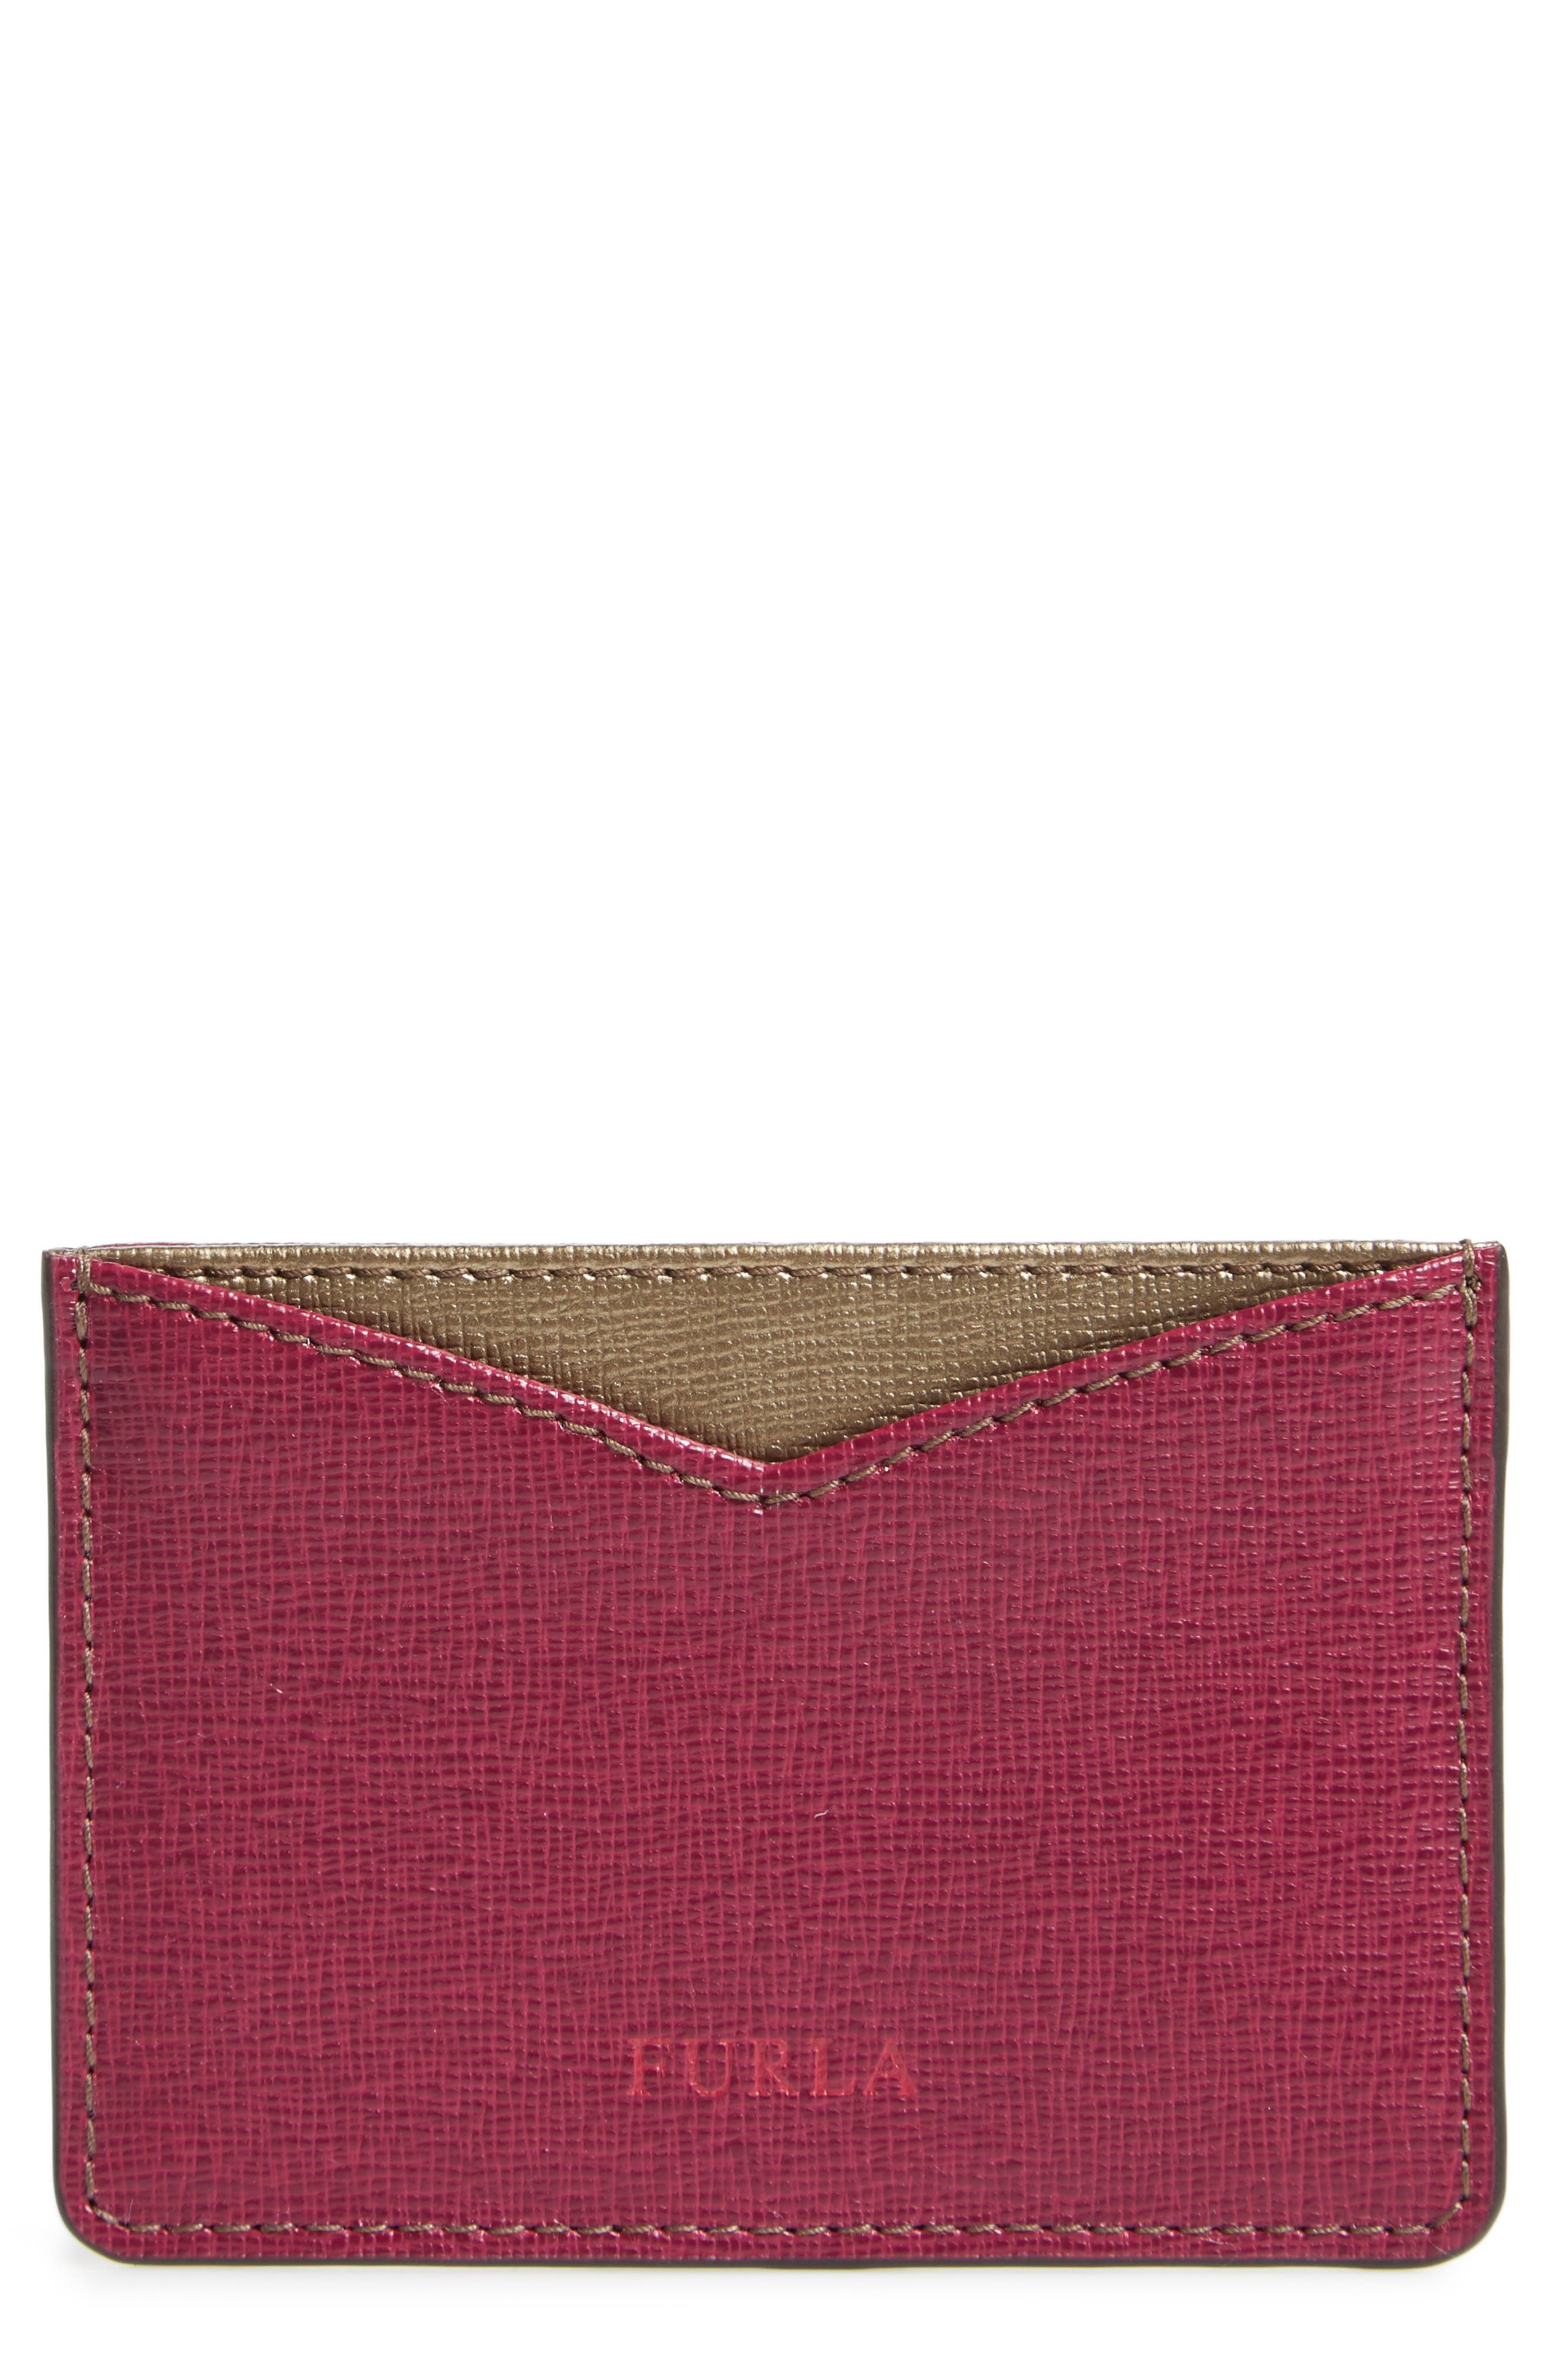 Gioia Saffiano Leather Card Case,                         Main,                         color, Amarena+Color Bronzo